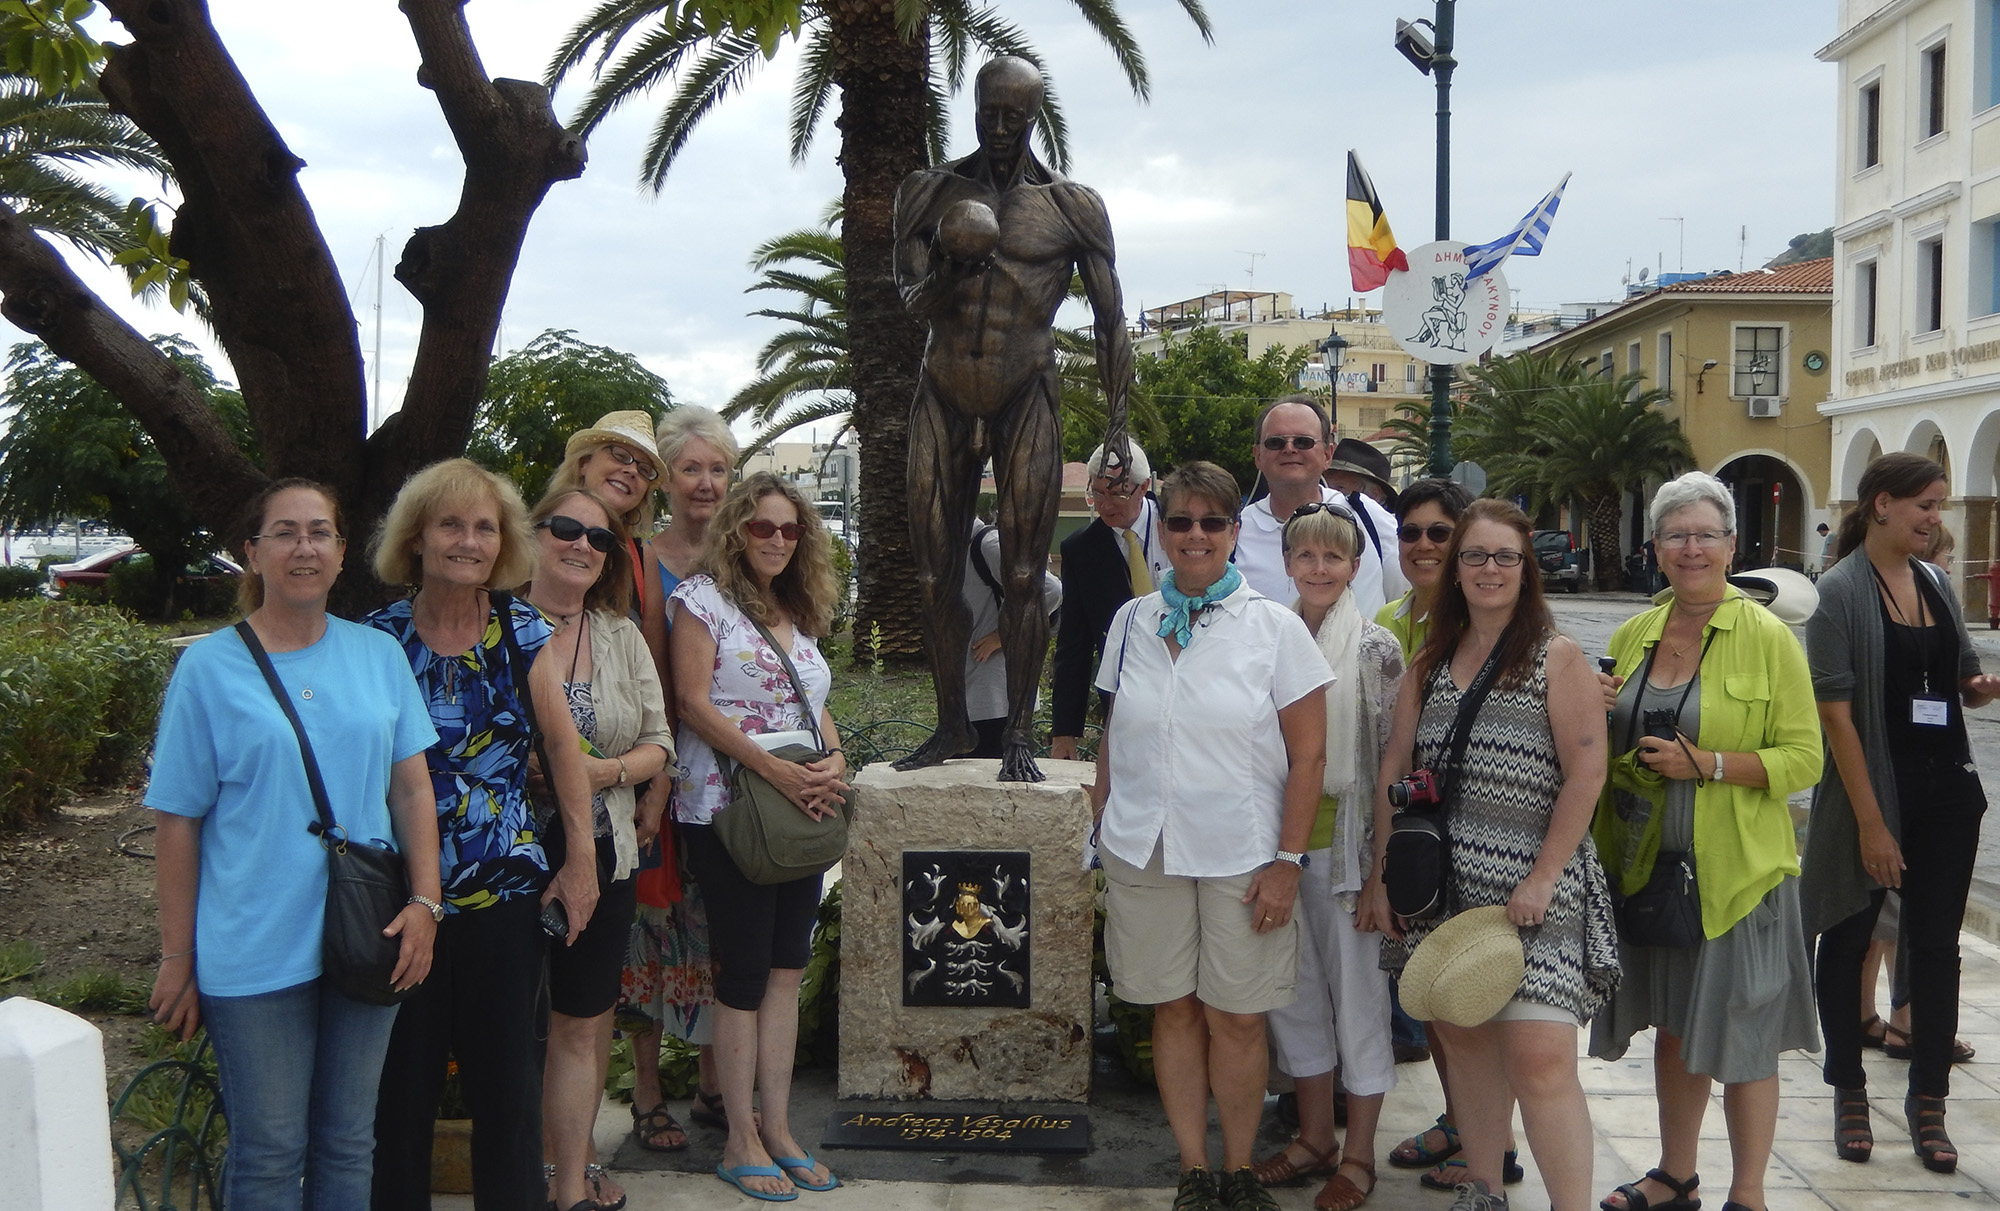 Southern Greece Tour participants pose with the monument to Vesalius in Zakynthos. Vesalius died on this Ionian Island when his ship wrecked there in 1564.